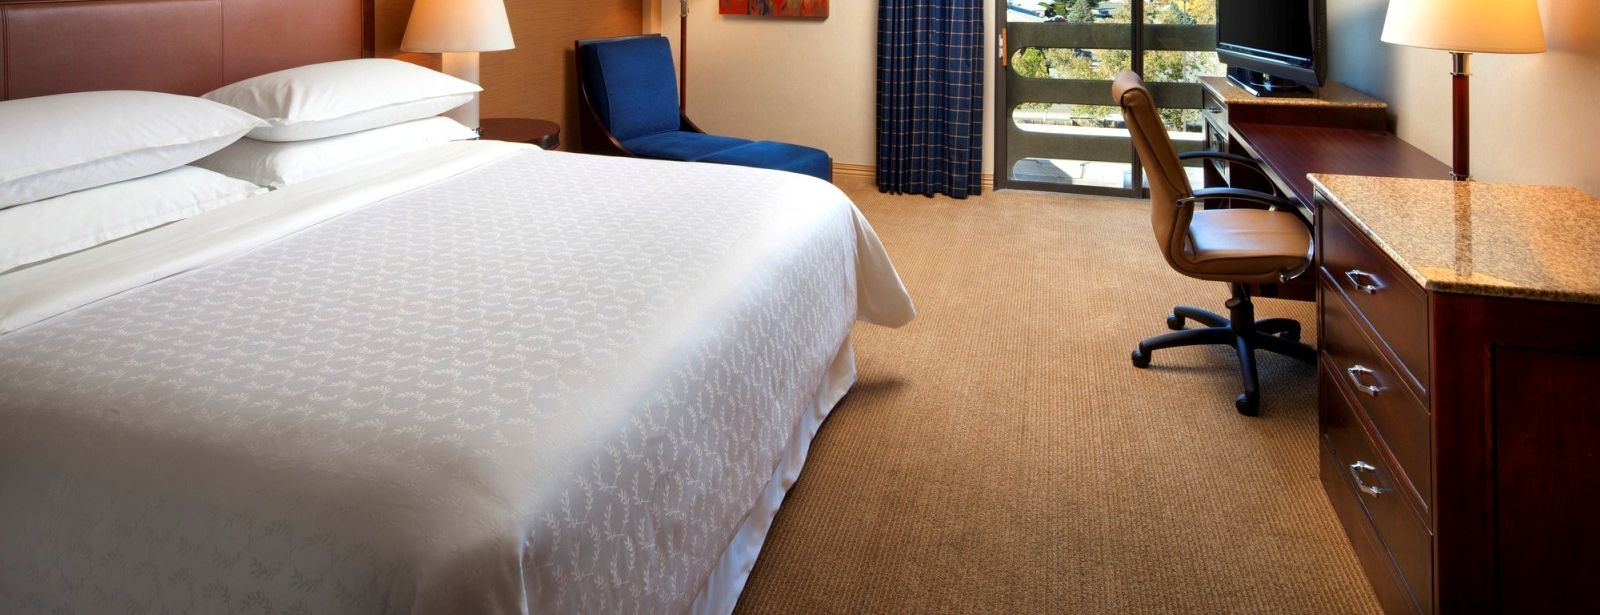 Traditional Rooms | Sheraton Albuquerque Uptown